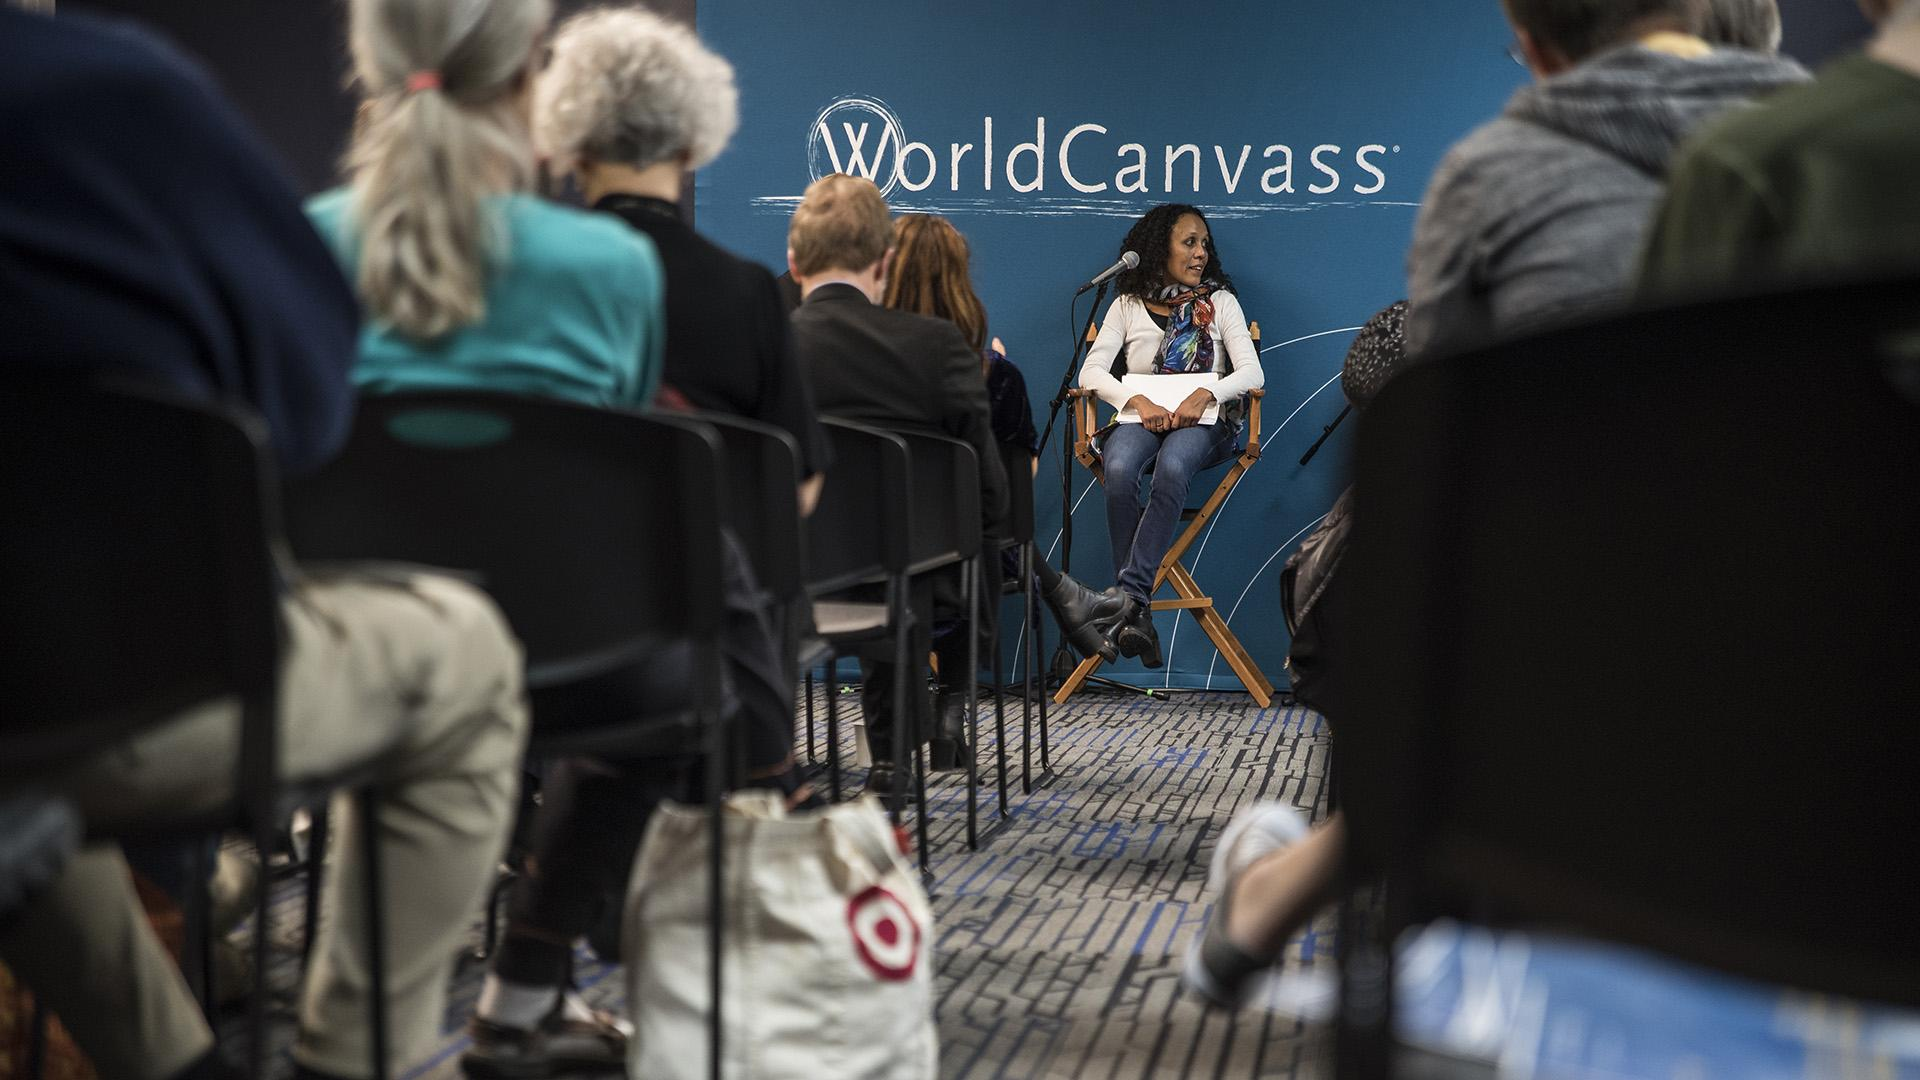 Attendees listen to a panel discussion during the World Canvass lecture at Merge on Wednesday, Oct. 18, 2017. The topic of discussion was fake news in the modern media. (Ben Smith/The Daily Iowan)